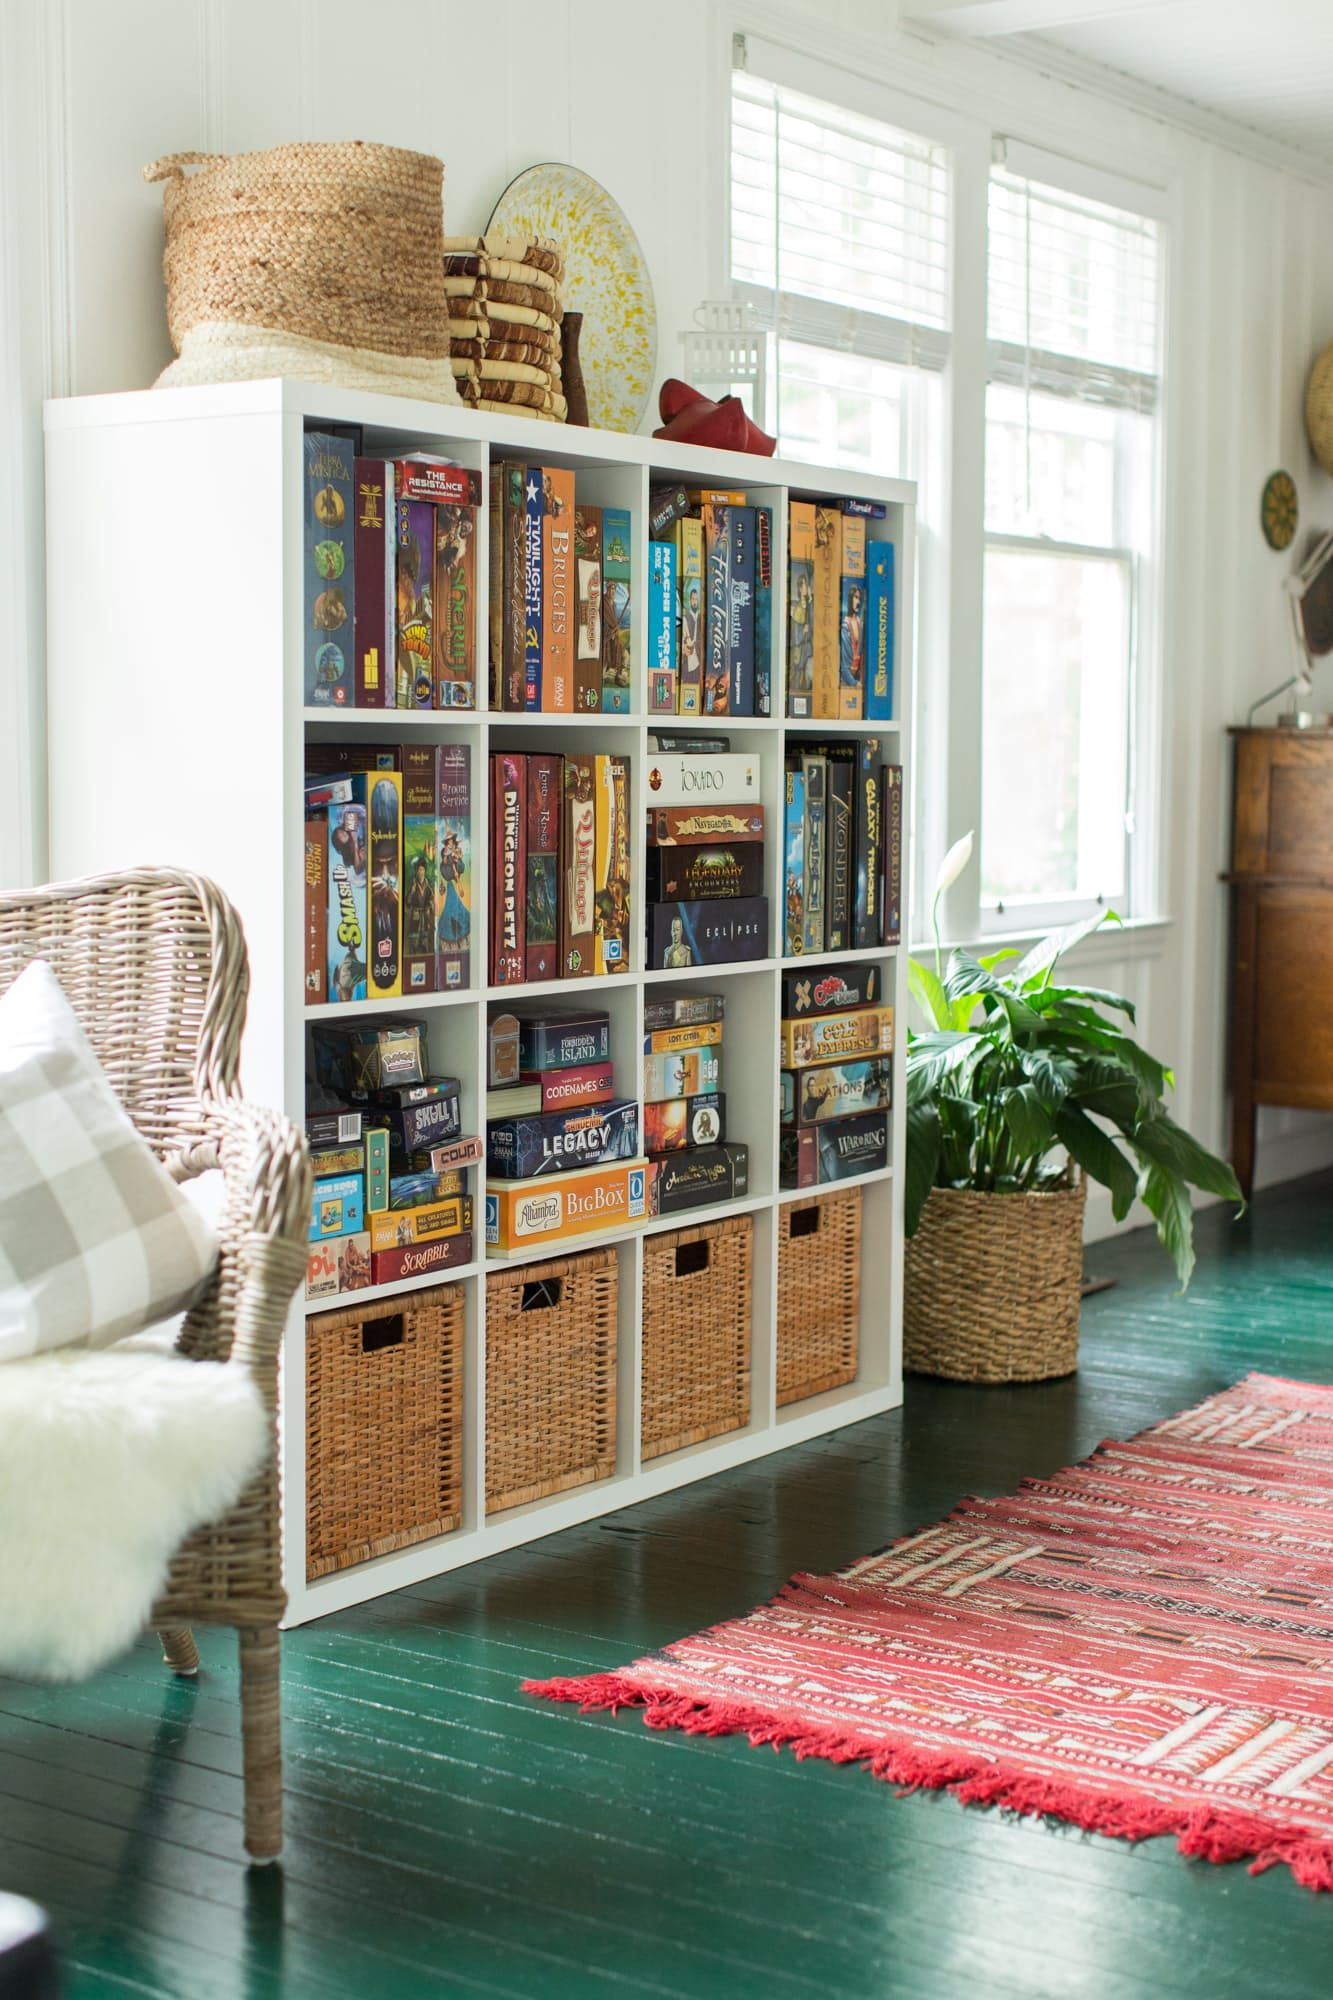 The Shelving Also From Ikea Houses Manny S Impressive Board Collection Rug